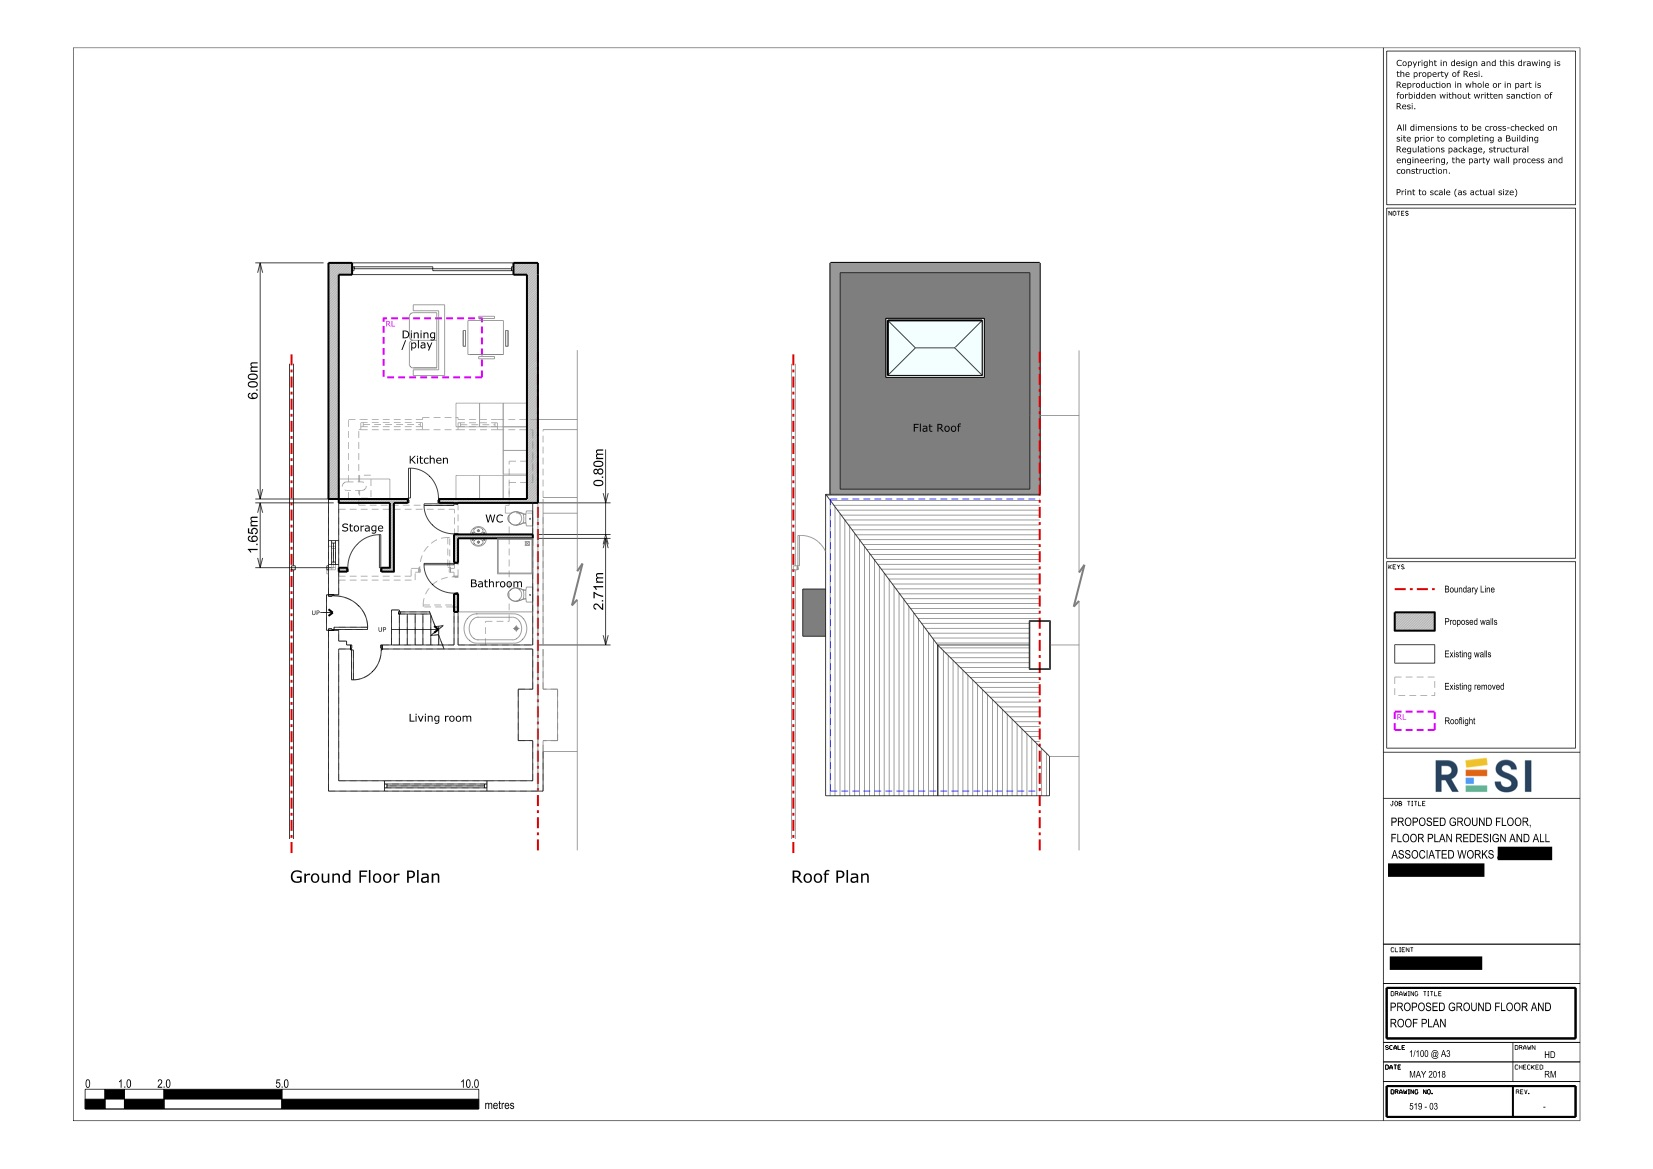 Architectural drawings 28   ground floor plans